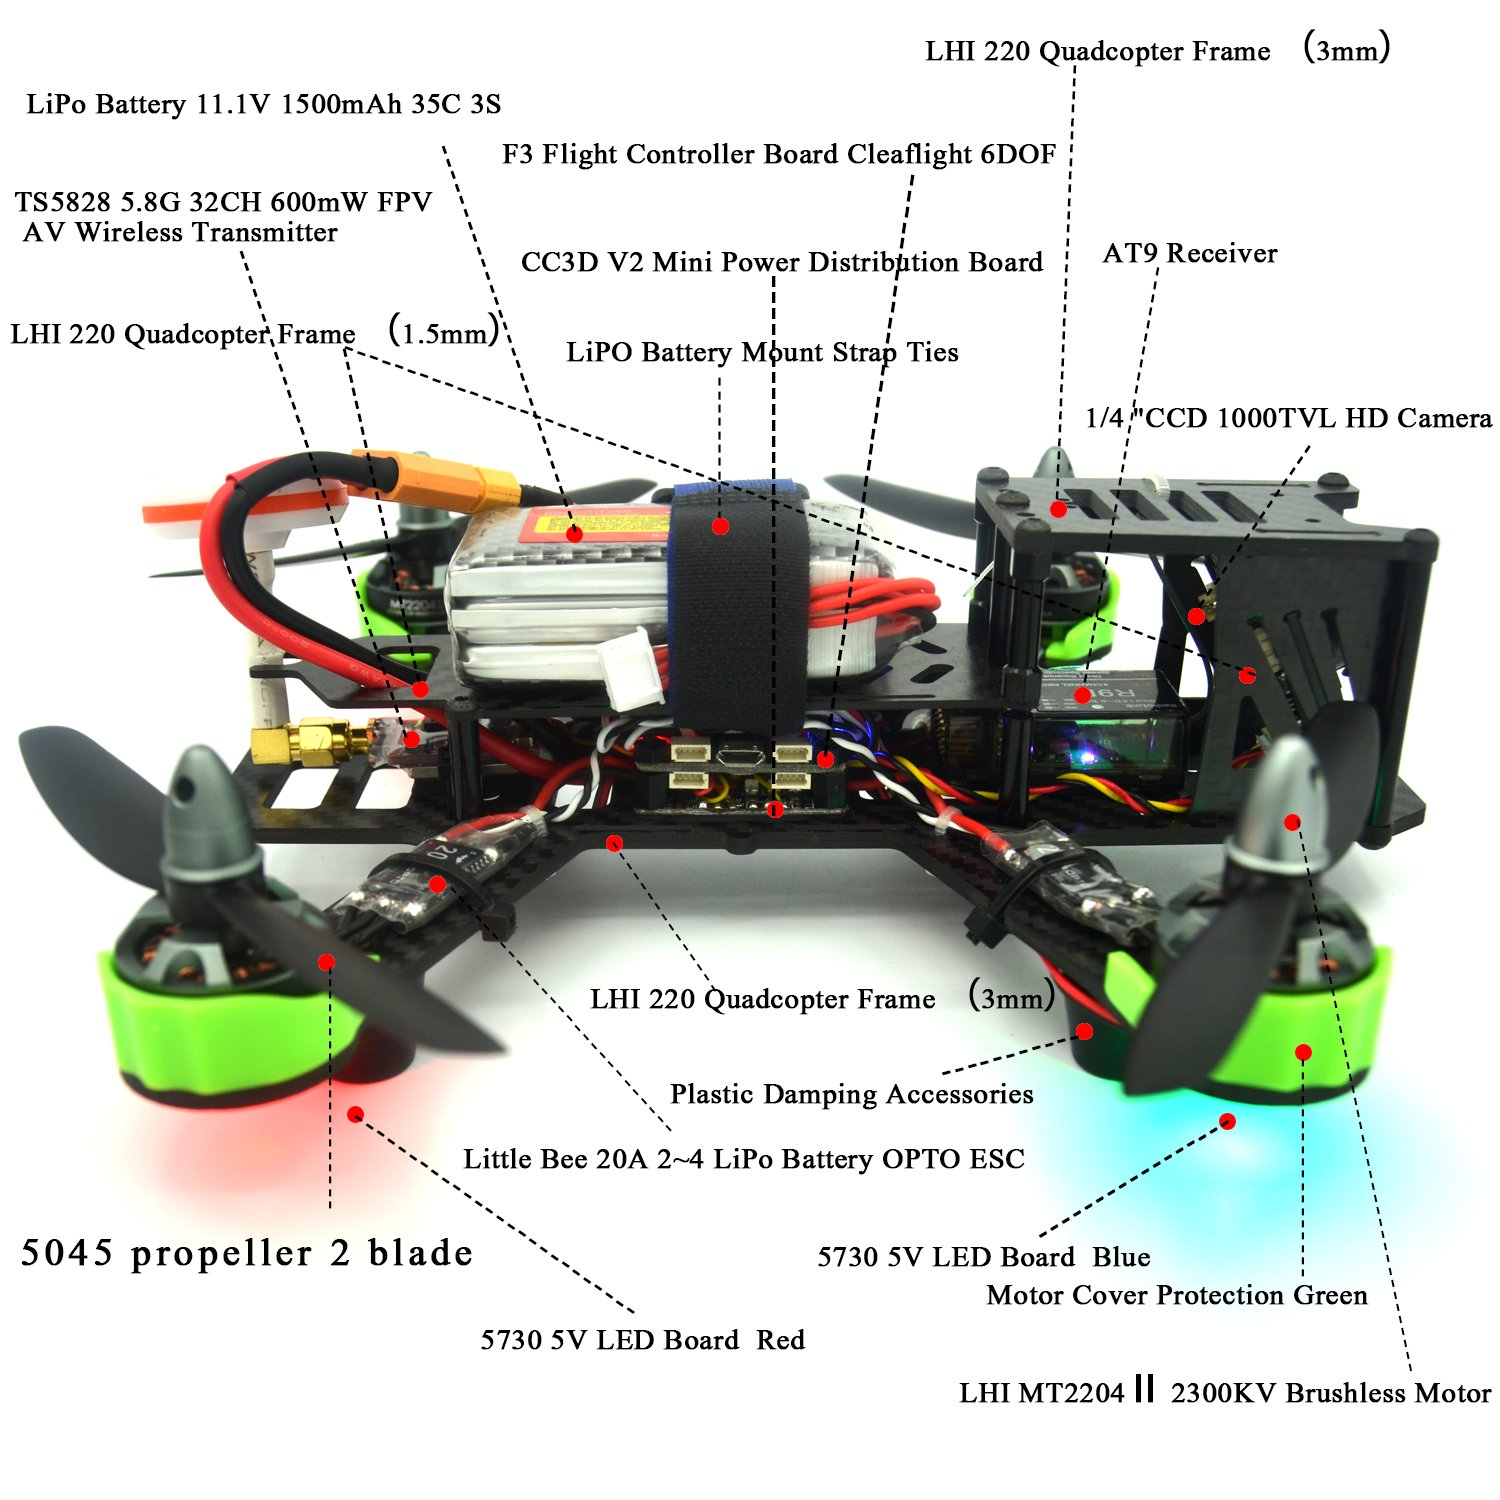 Lhi Fpv Rtf Full Carbon Fiber 220 Mm Quadcopter Race Wiring Diagram Cc3d Copter Racing Drone With Radiolink At9 Remote Controller 1000tvl Camera Ts5828 58g